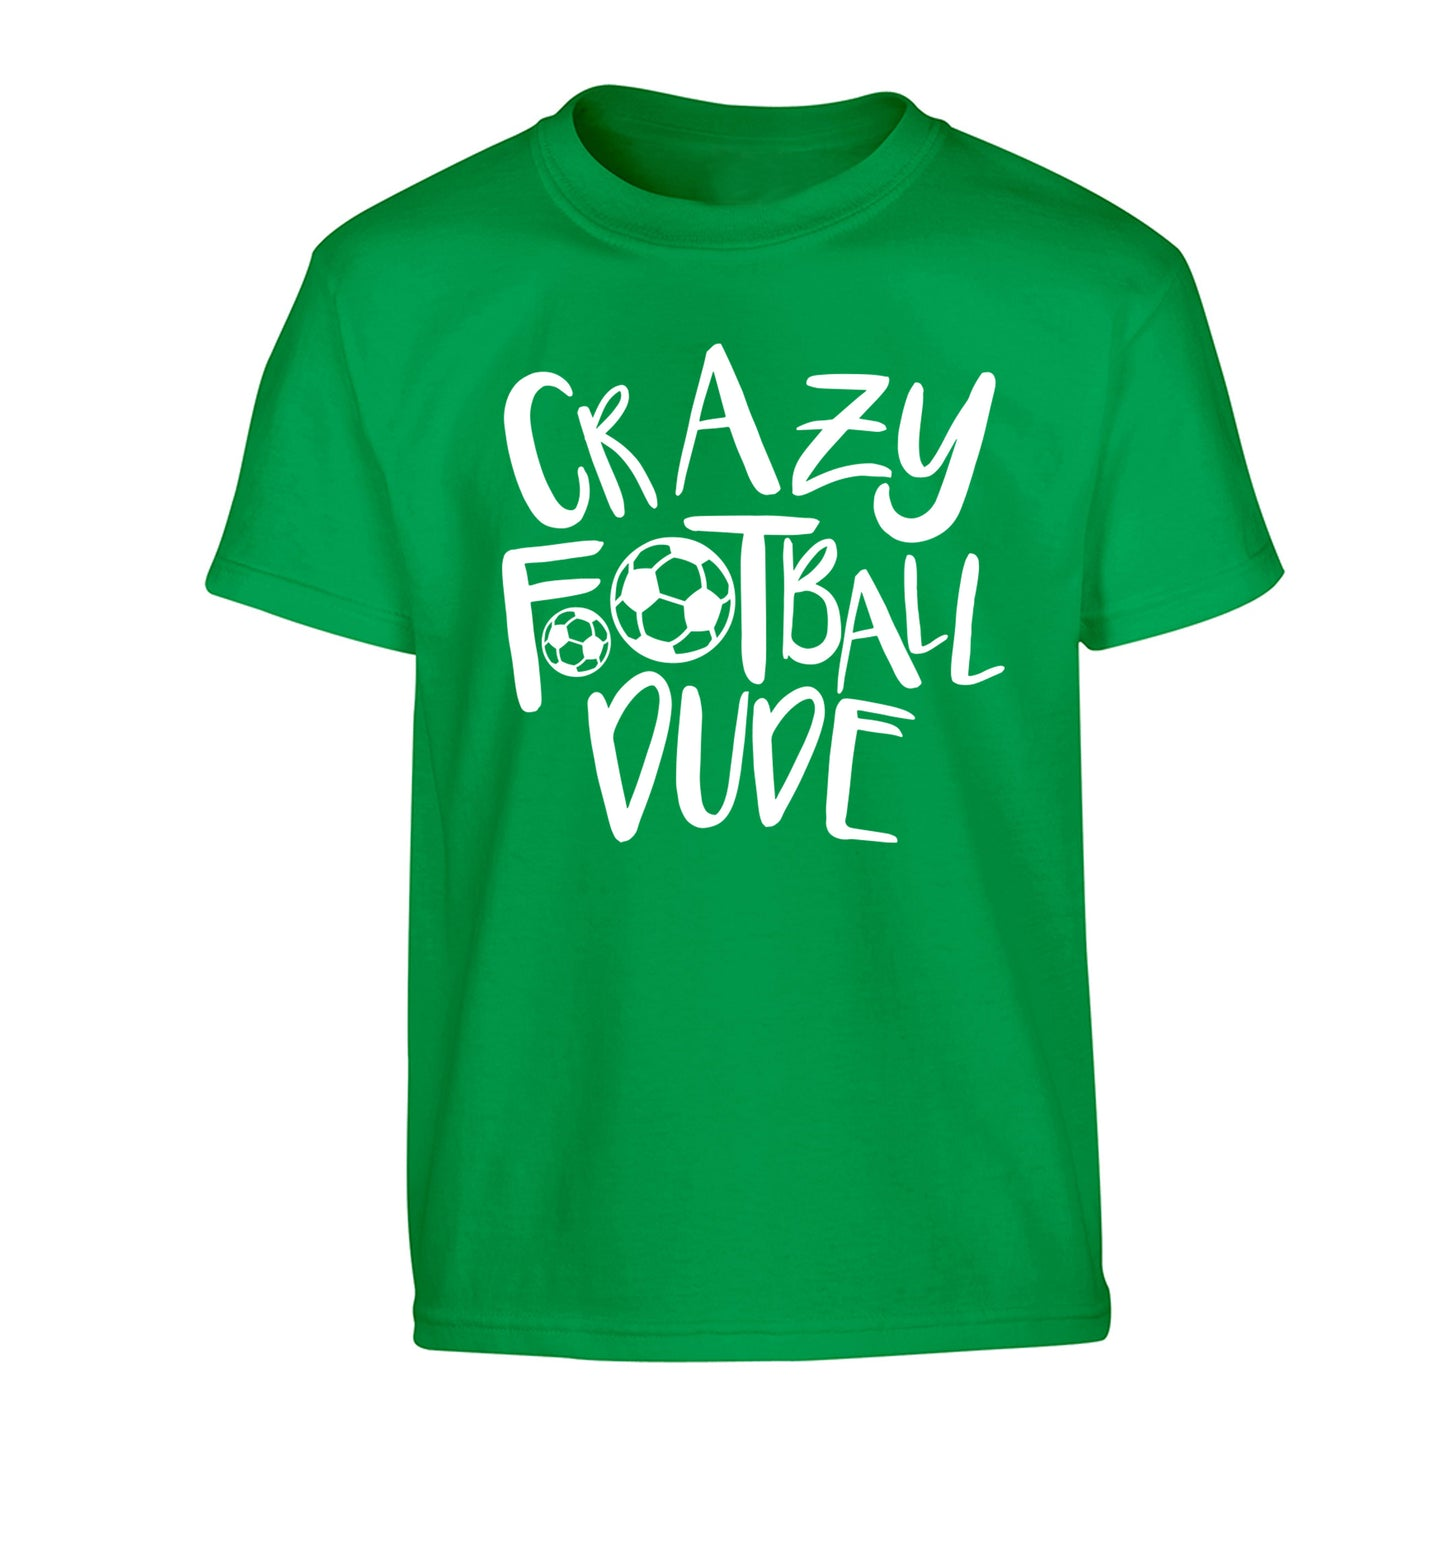 Crazy football dude Children's green Tshirt 12-14 Years